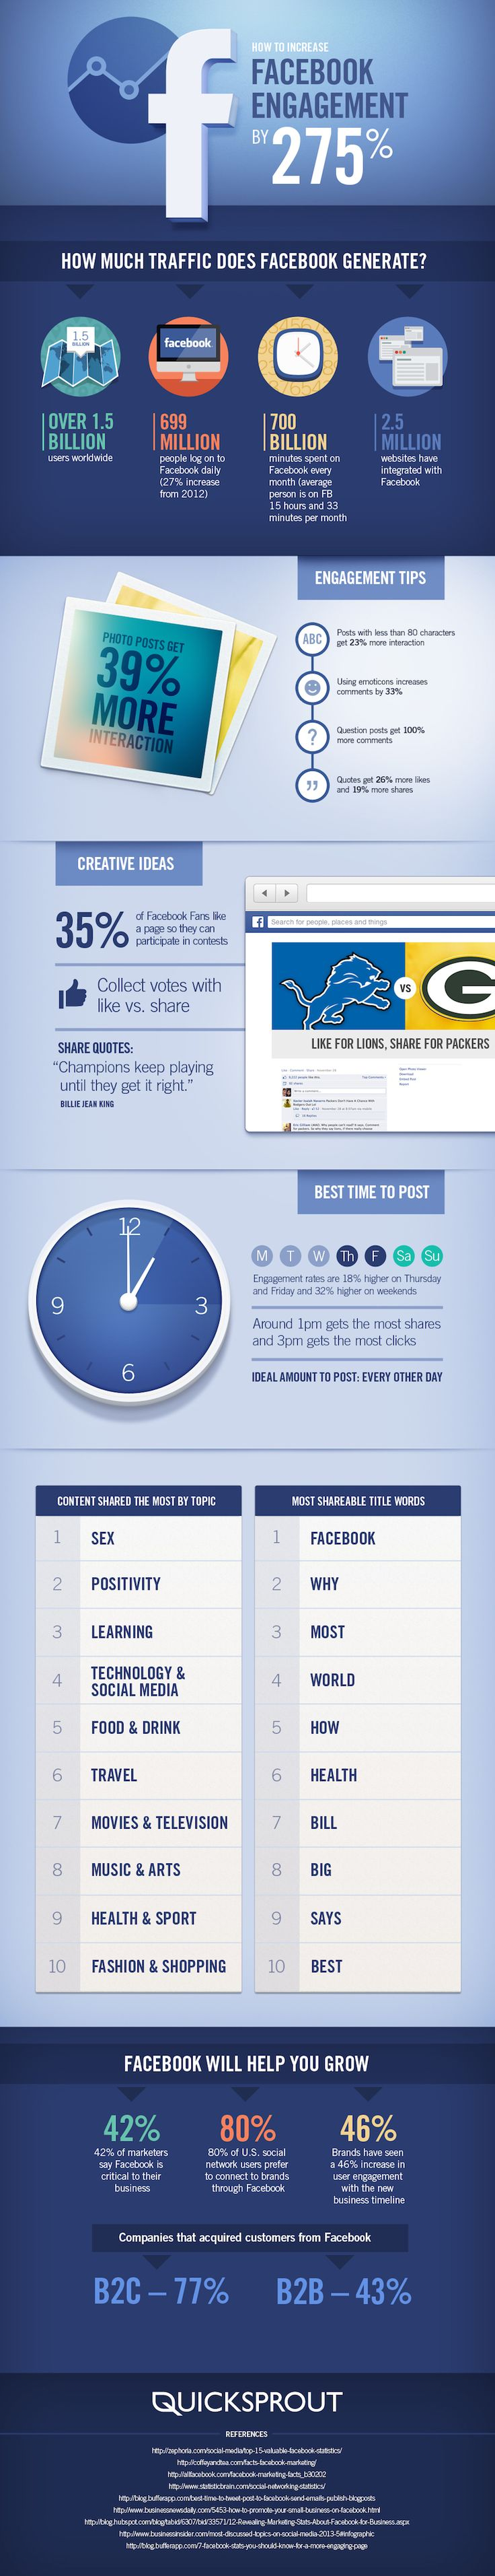 How to increase FaceBook engagement vy 275% #infographic